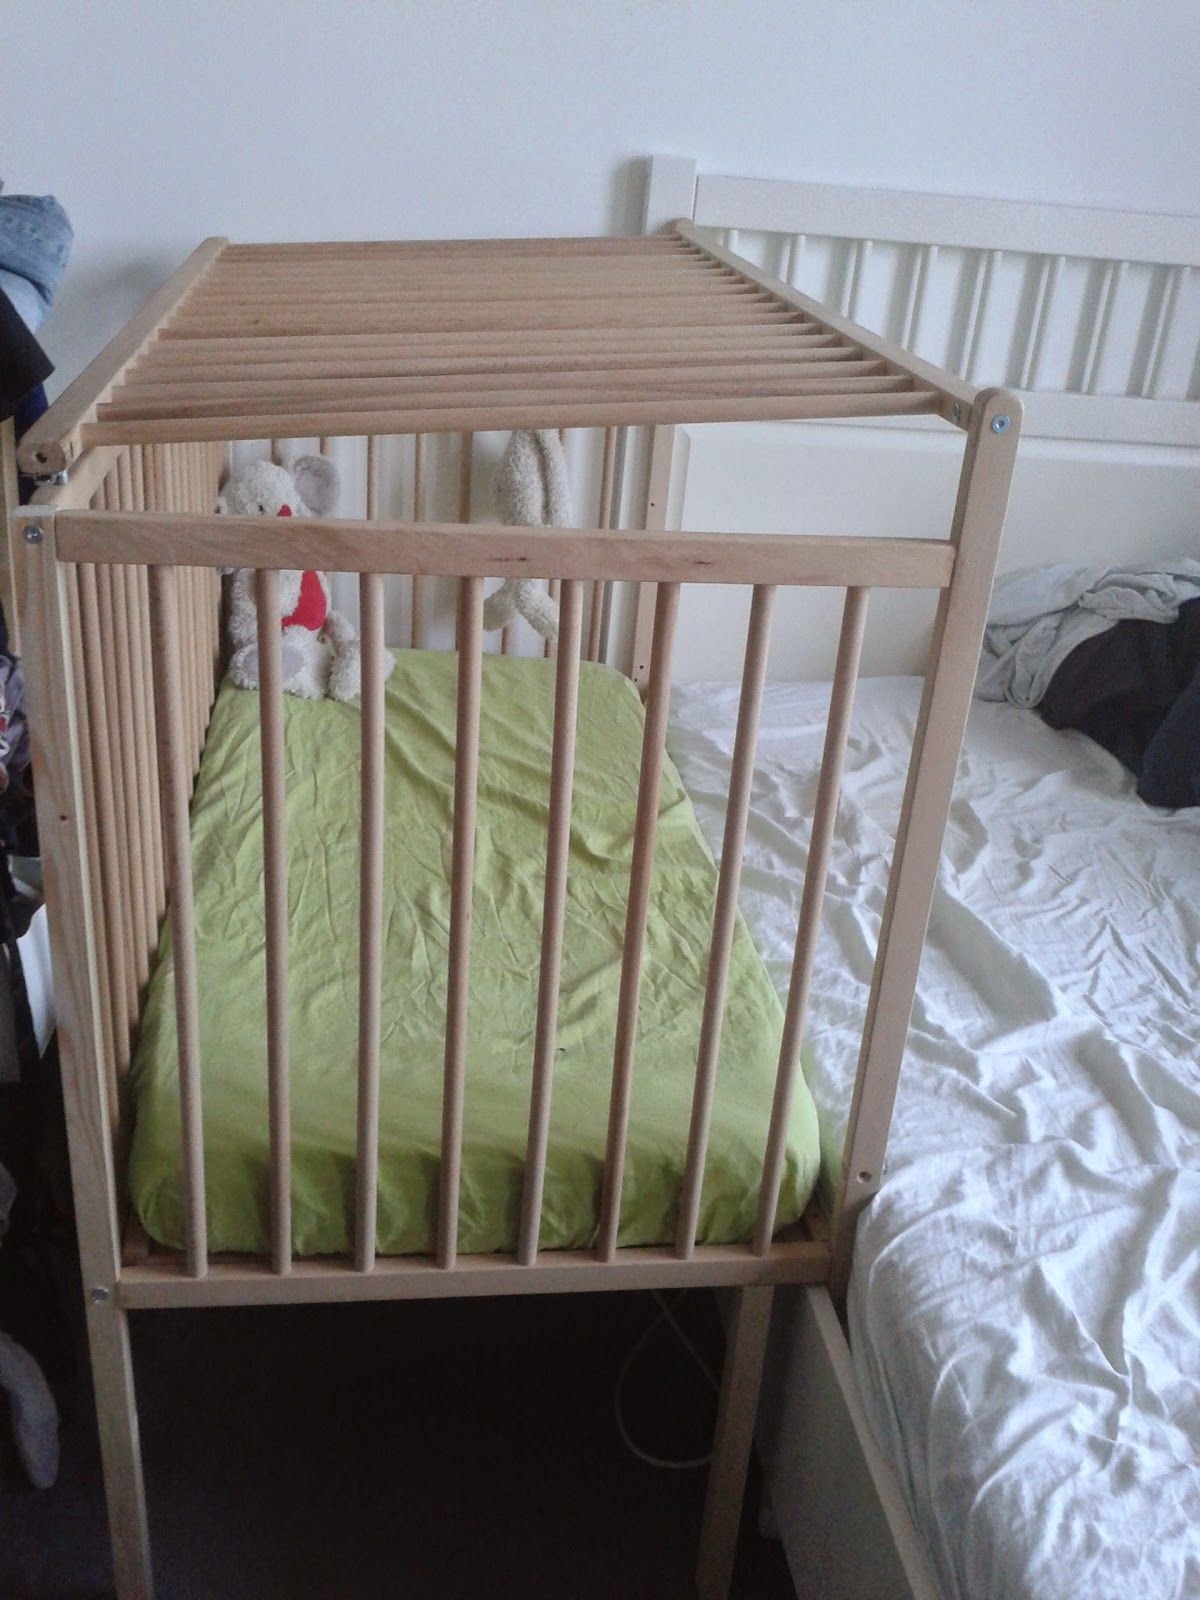 DIY  ikea sniglar hack co sleeper with safety gate exactly what I